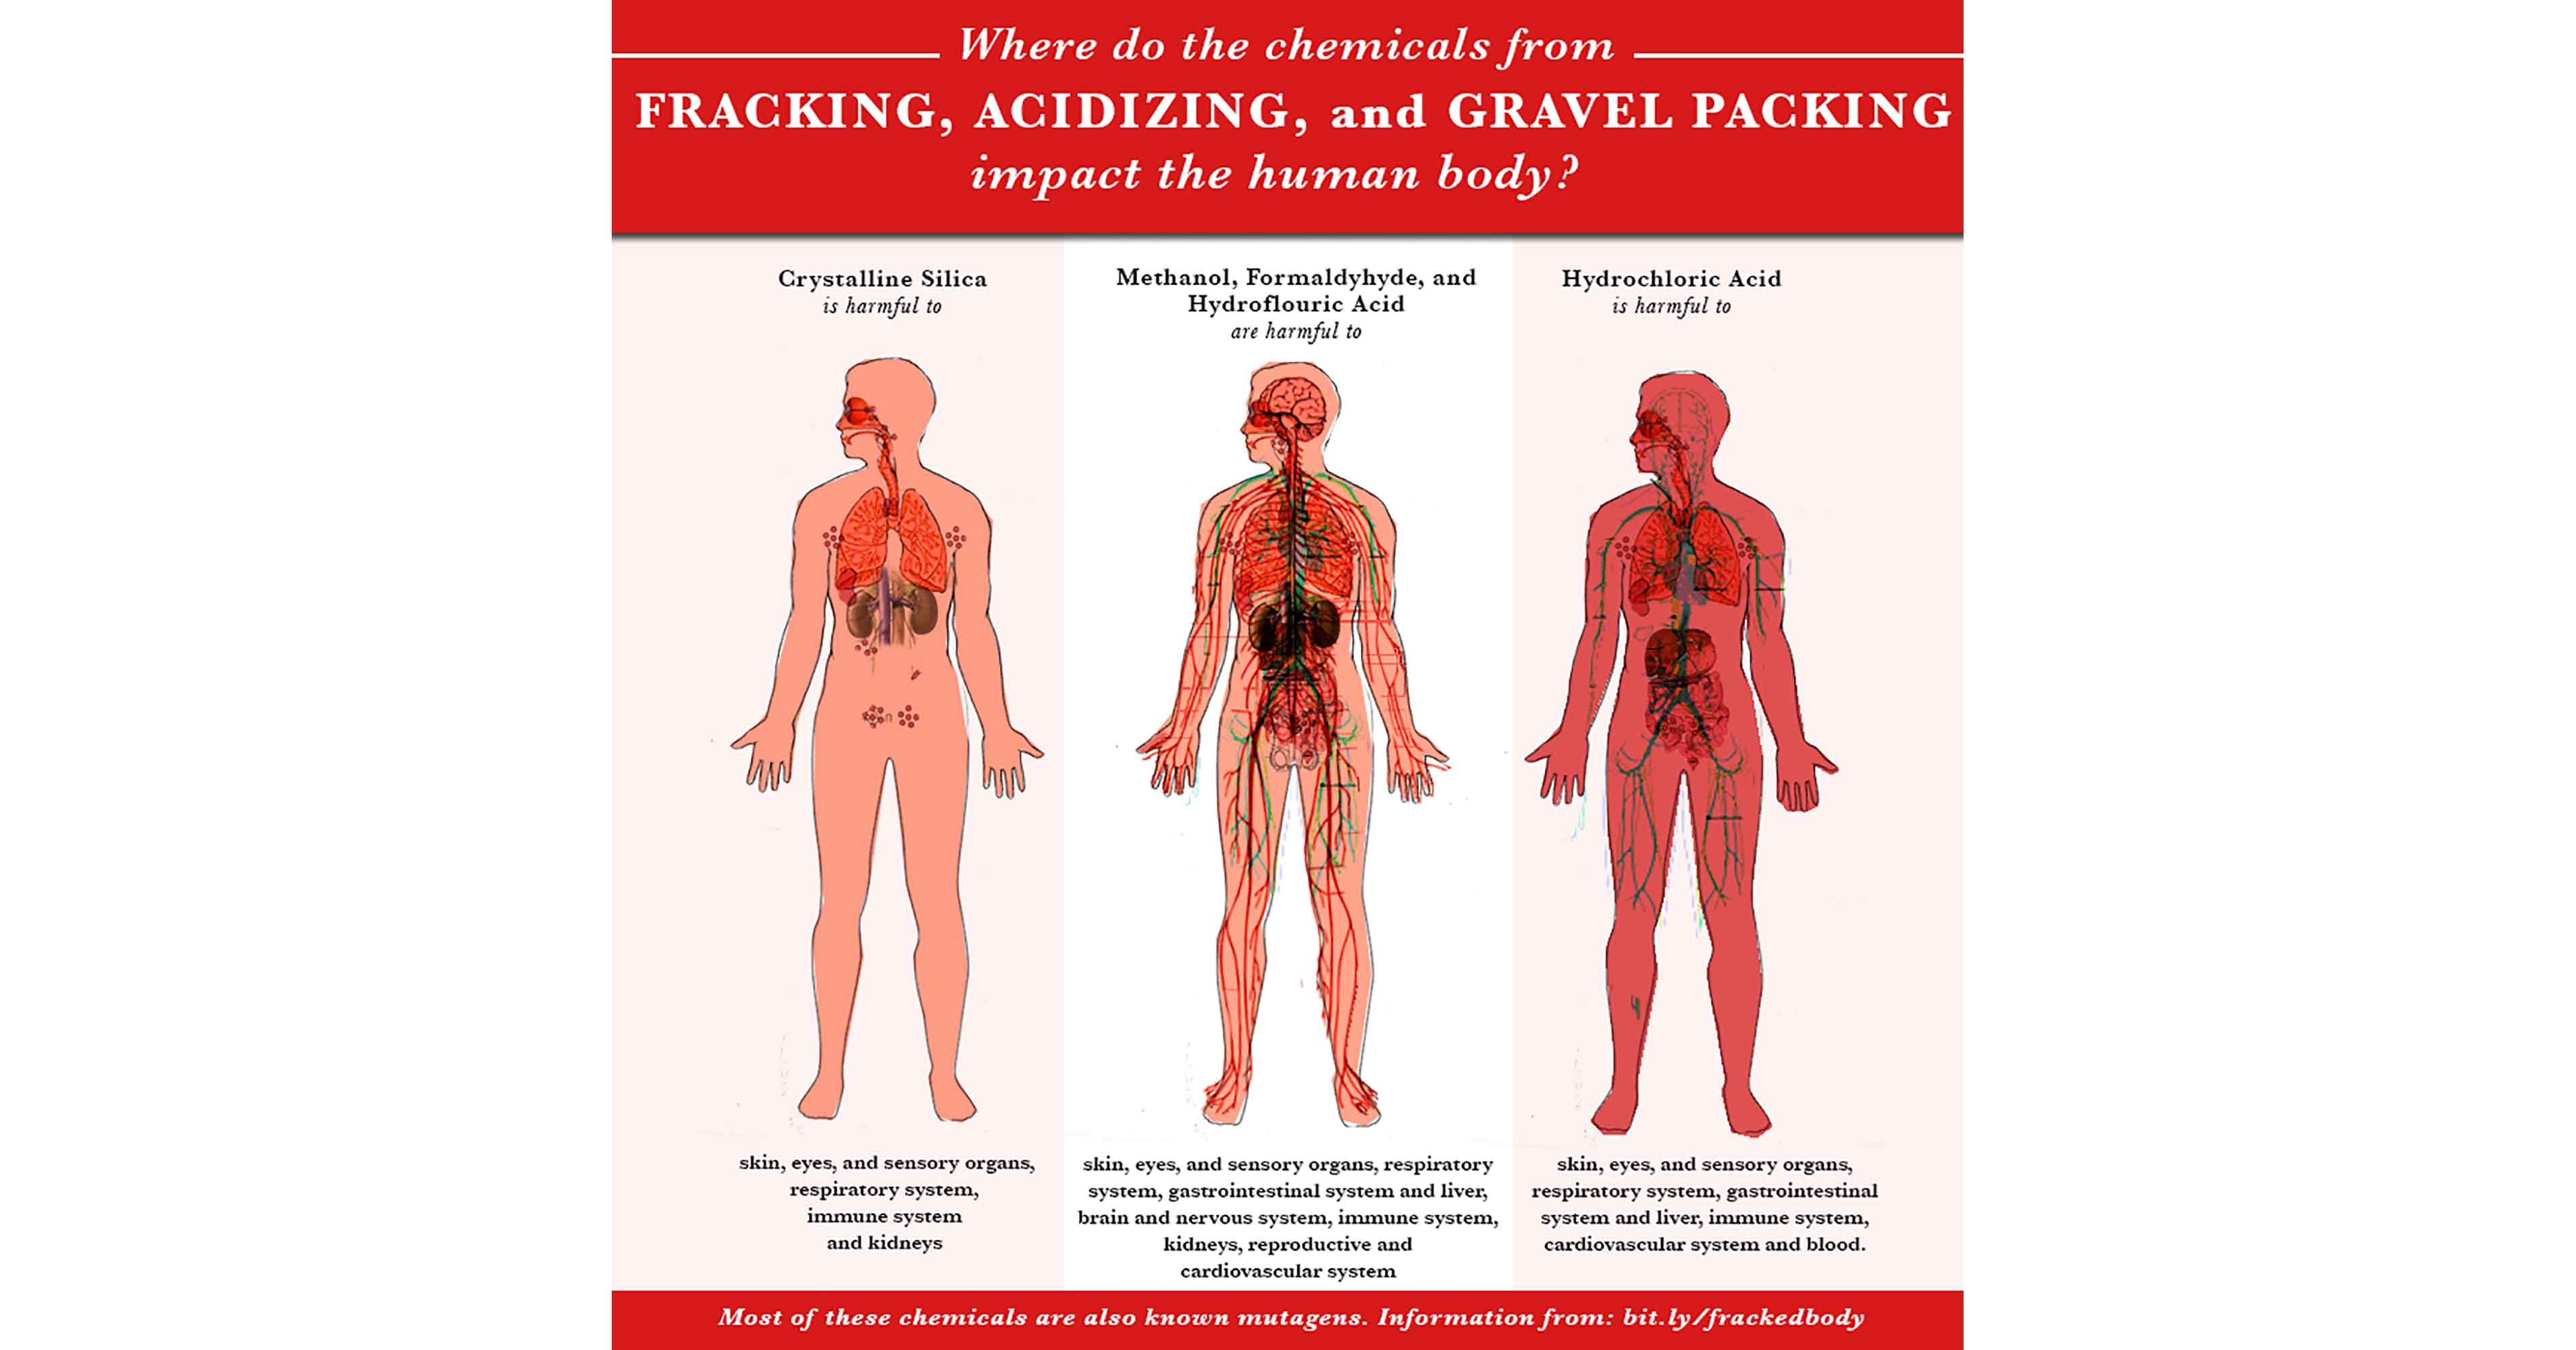 What are the effects of fracking on the environment?